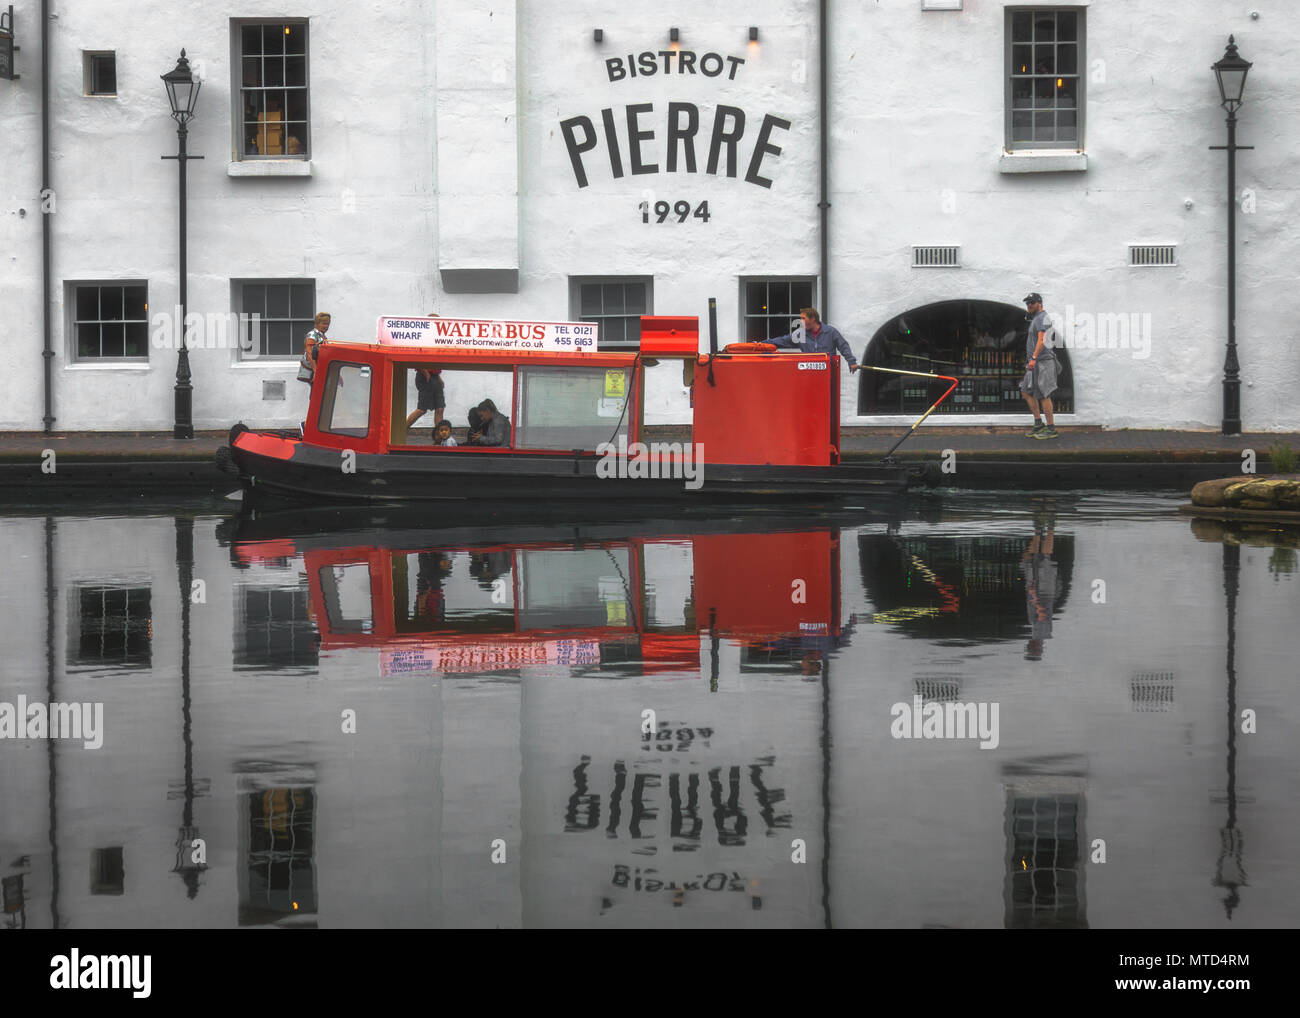 Pierre Bistro and water bus reflection in the Gas Street Basin canal in Birmingham - Stock Image